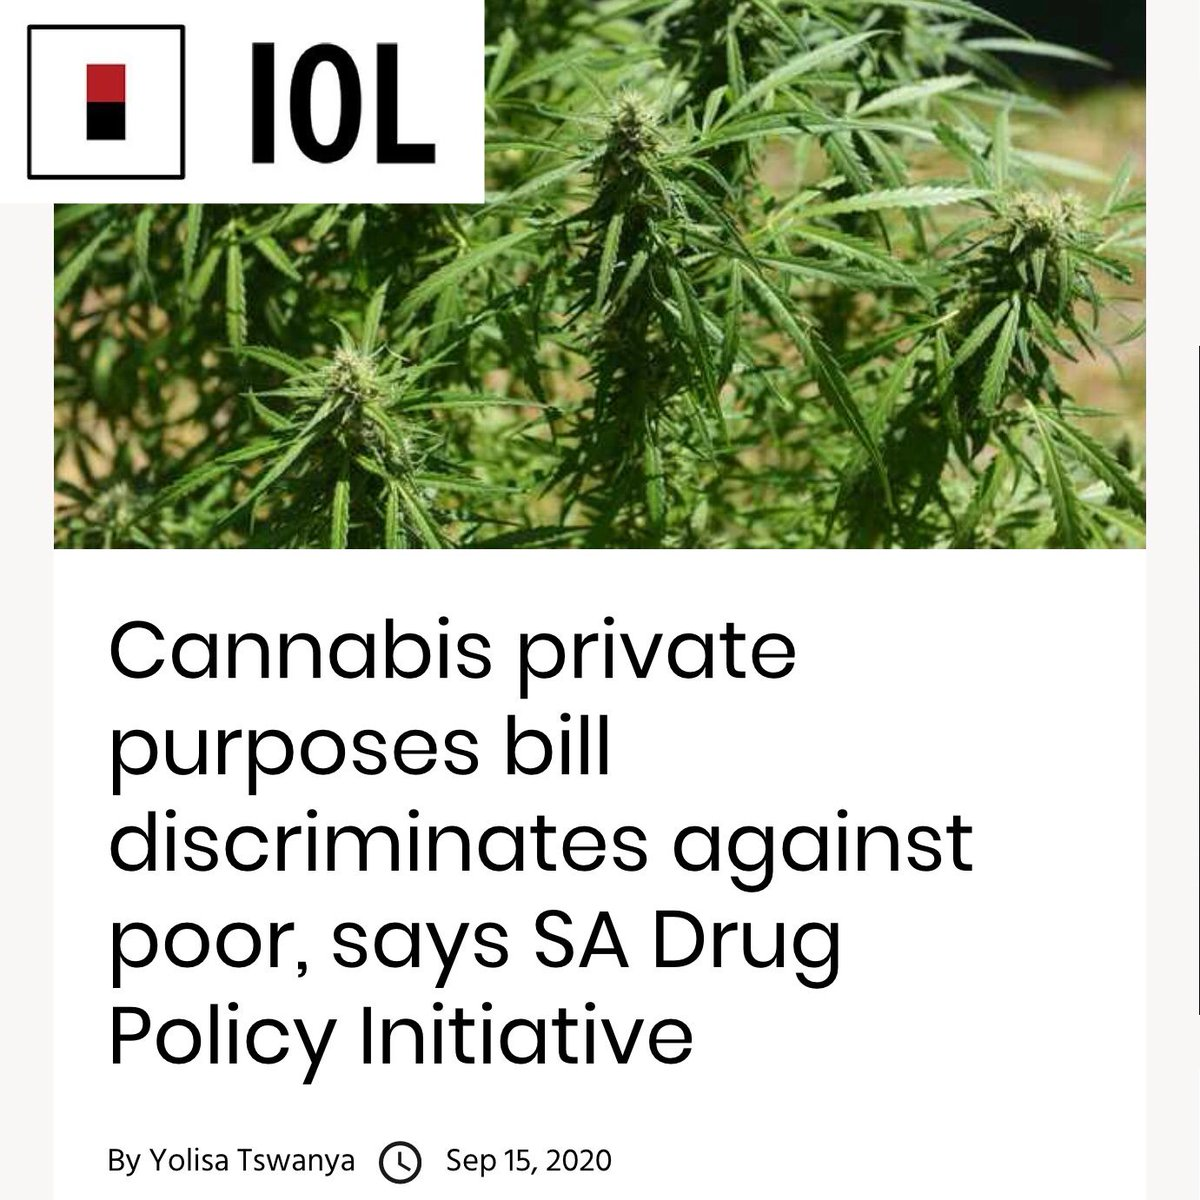 DaggaCouple: Cannabis private purposes bill discriminates against poor, says SA Drug Policy Initiative  https://t.co/Y3WWMKTe4D #GoodPeopleDisobeyBadLaws #CannabisCanHelpSA #noplantcounting #KnowYourFarmer #cannabisclub #StopTheCops #PeoplesPlantLobby #… https://t.co/K2BtQU9cBq